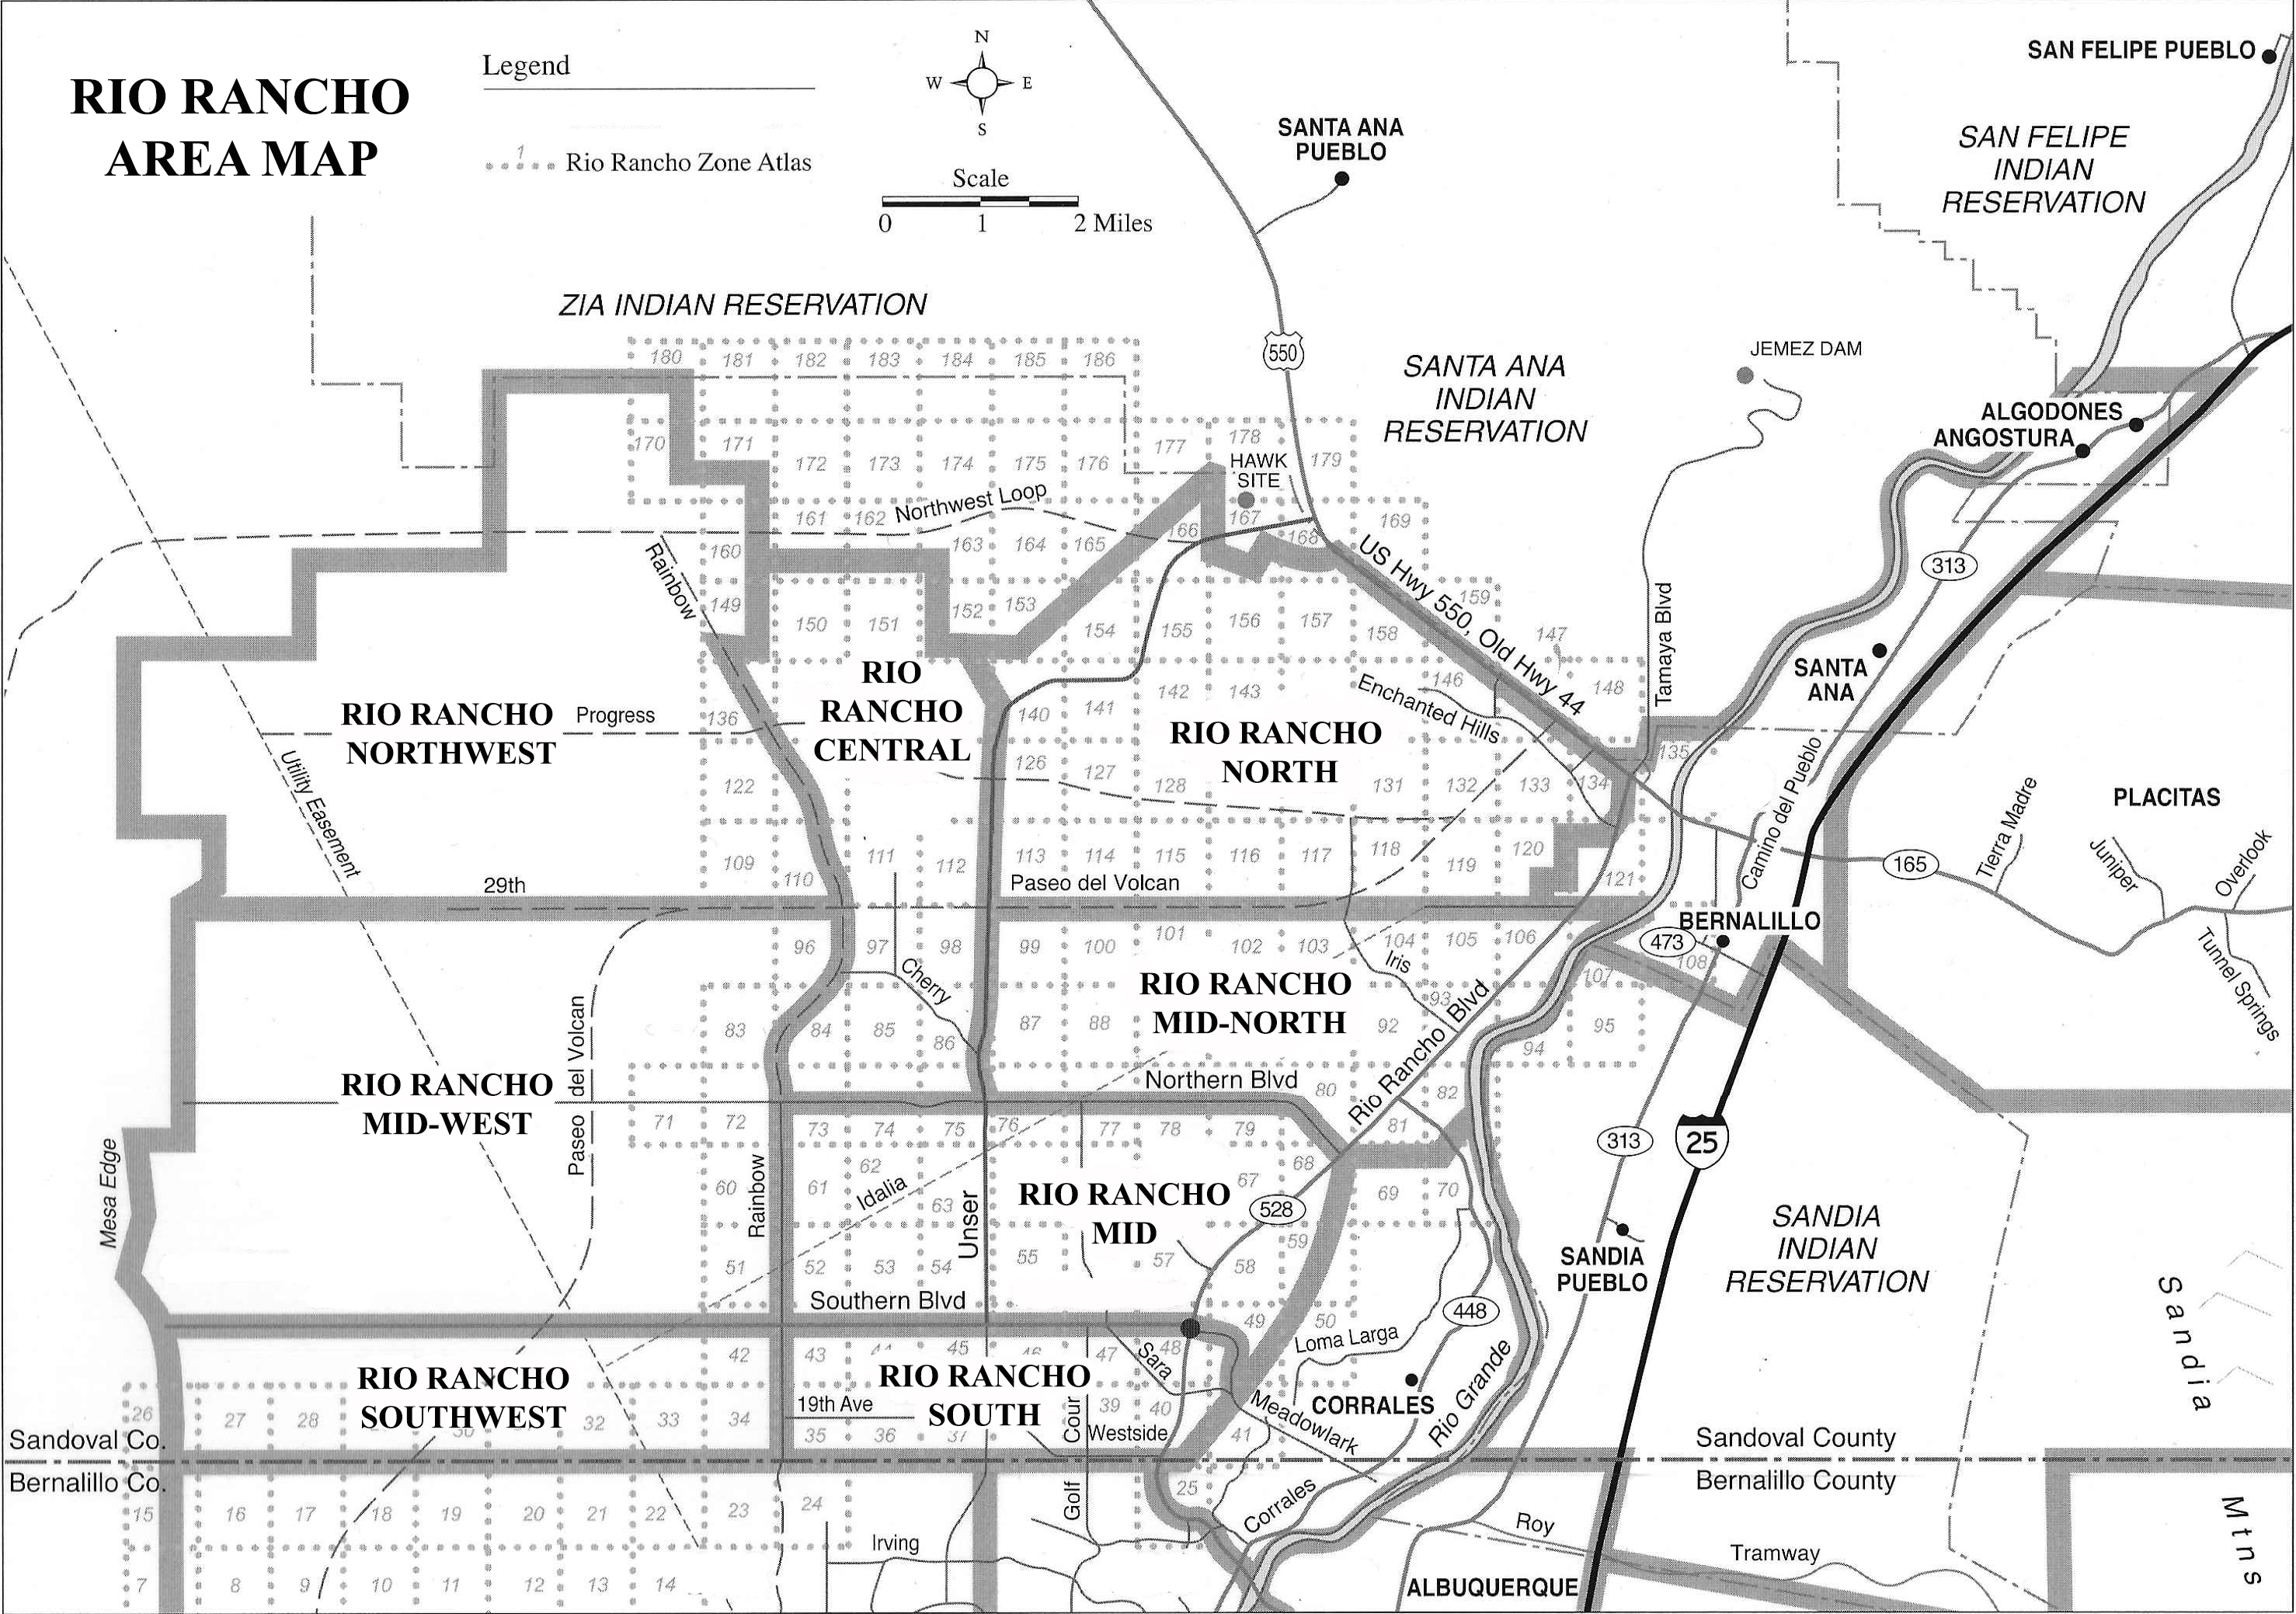 Rio Rancho Map Areas